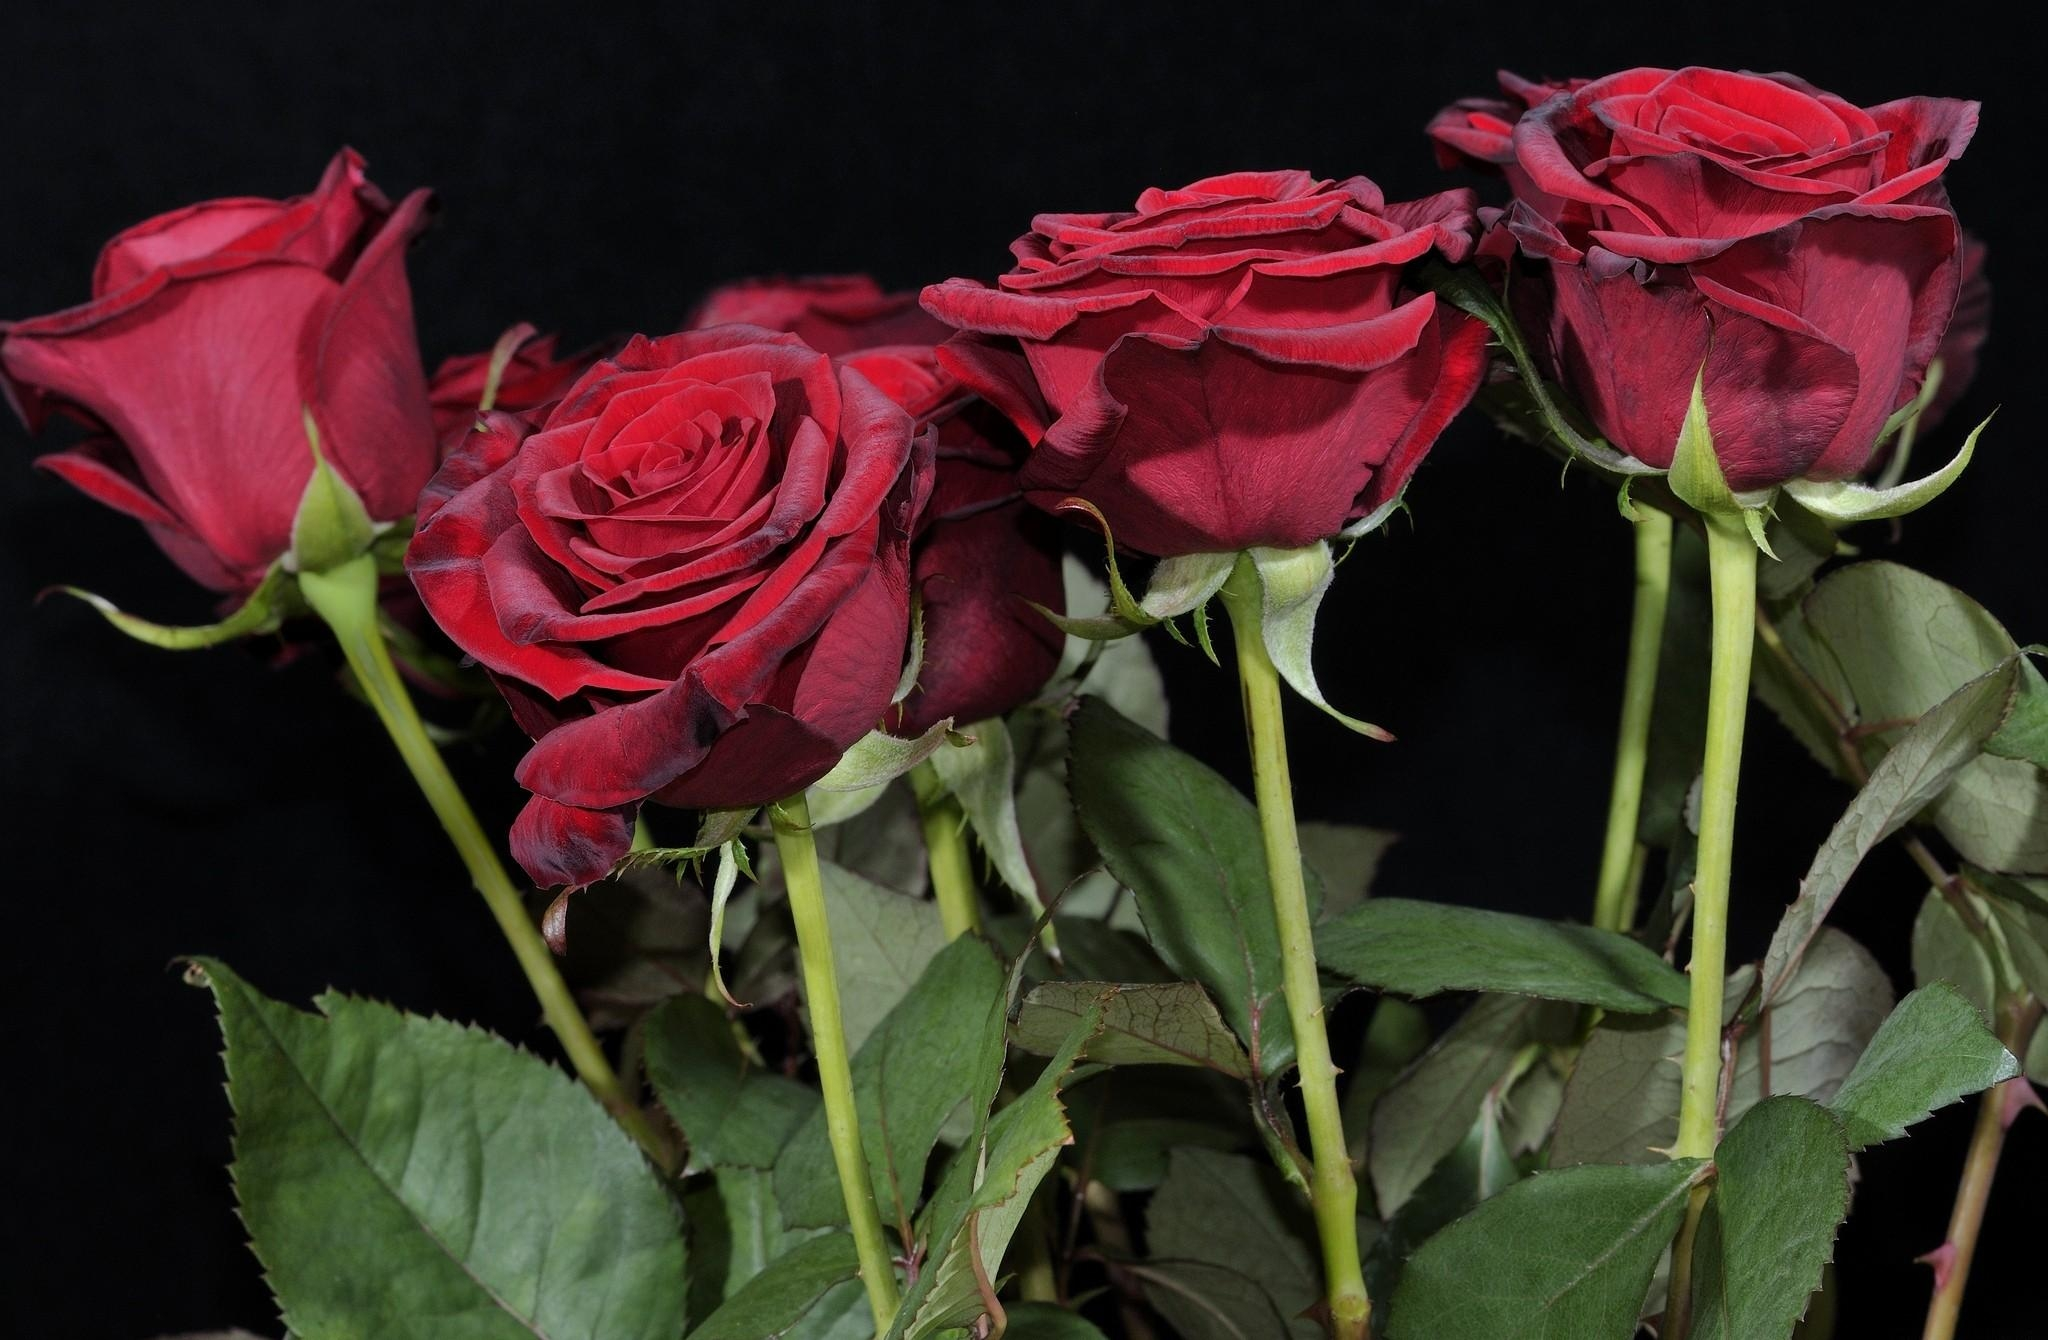 76601 download wallpaper Flowers, Bouquet, Black Background, Roses screensavers and pictures for free